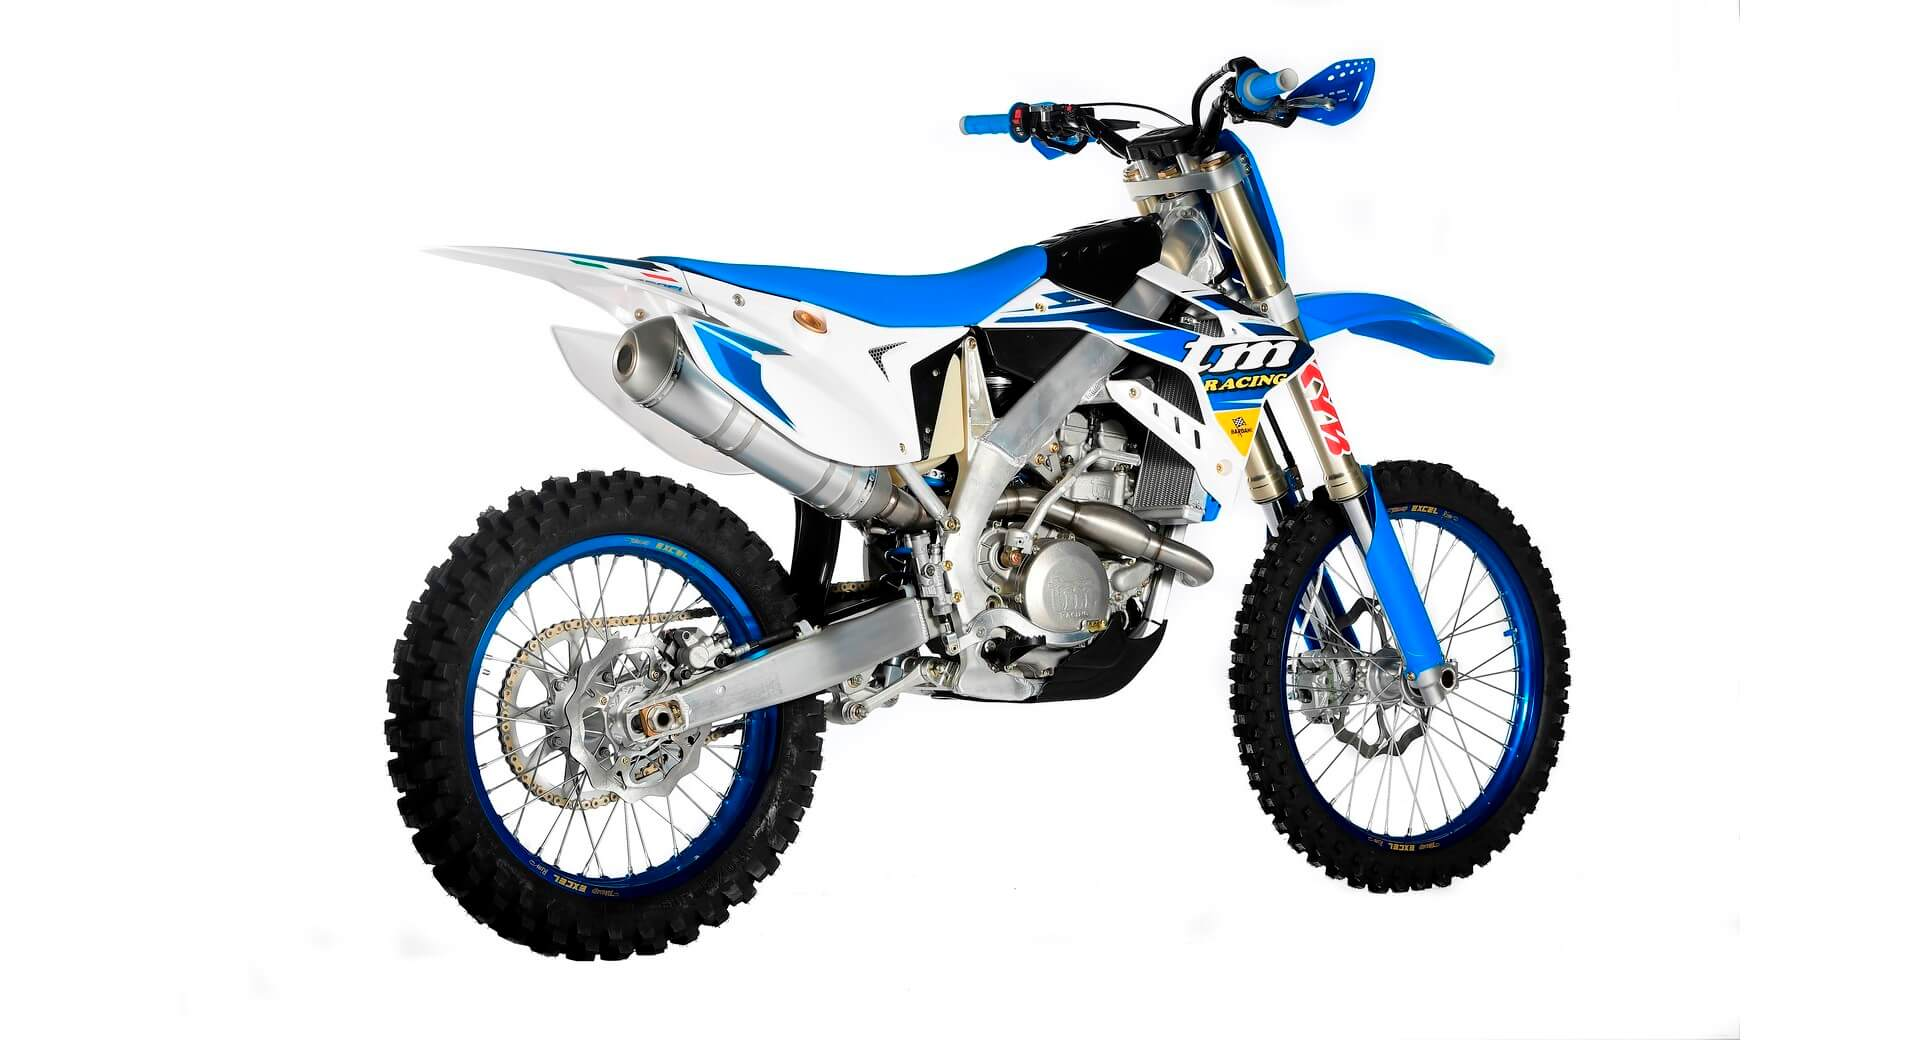 TM Racing Motocross MX 450 FI